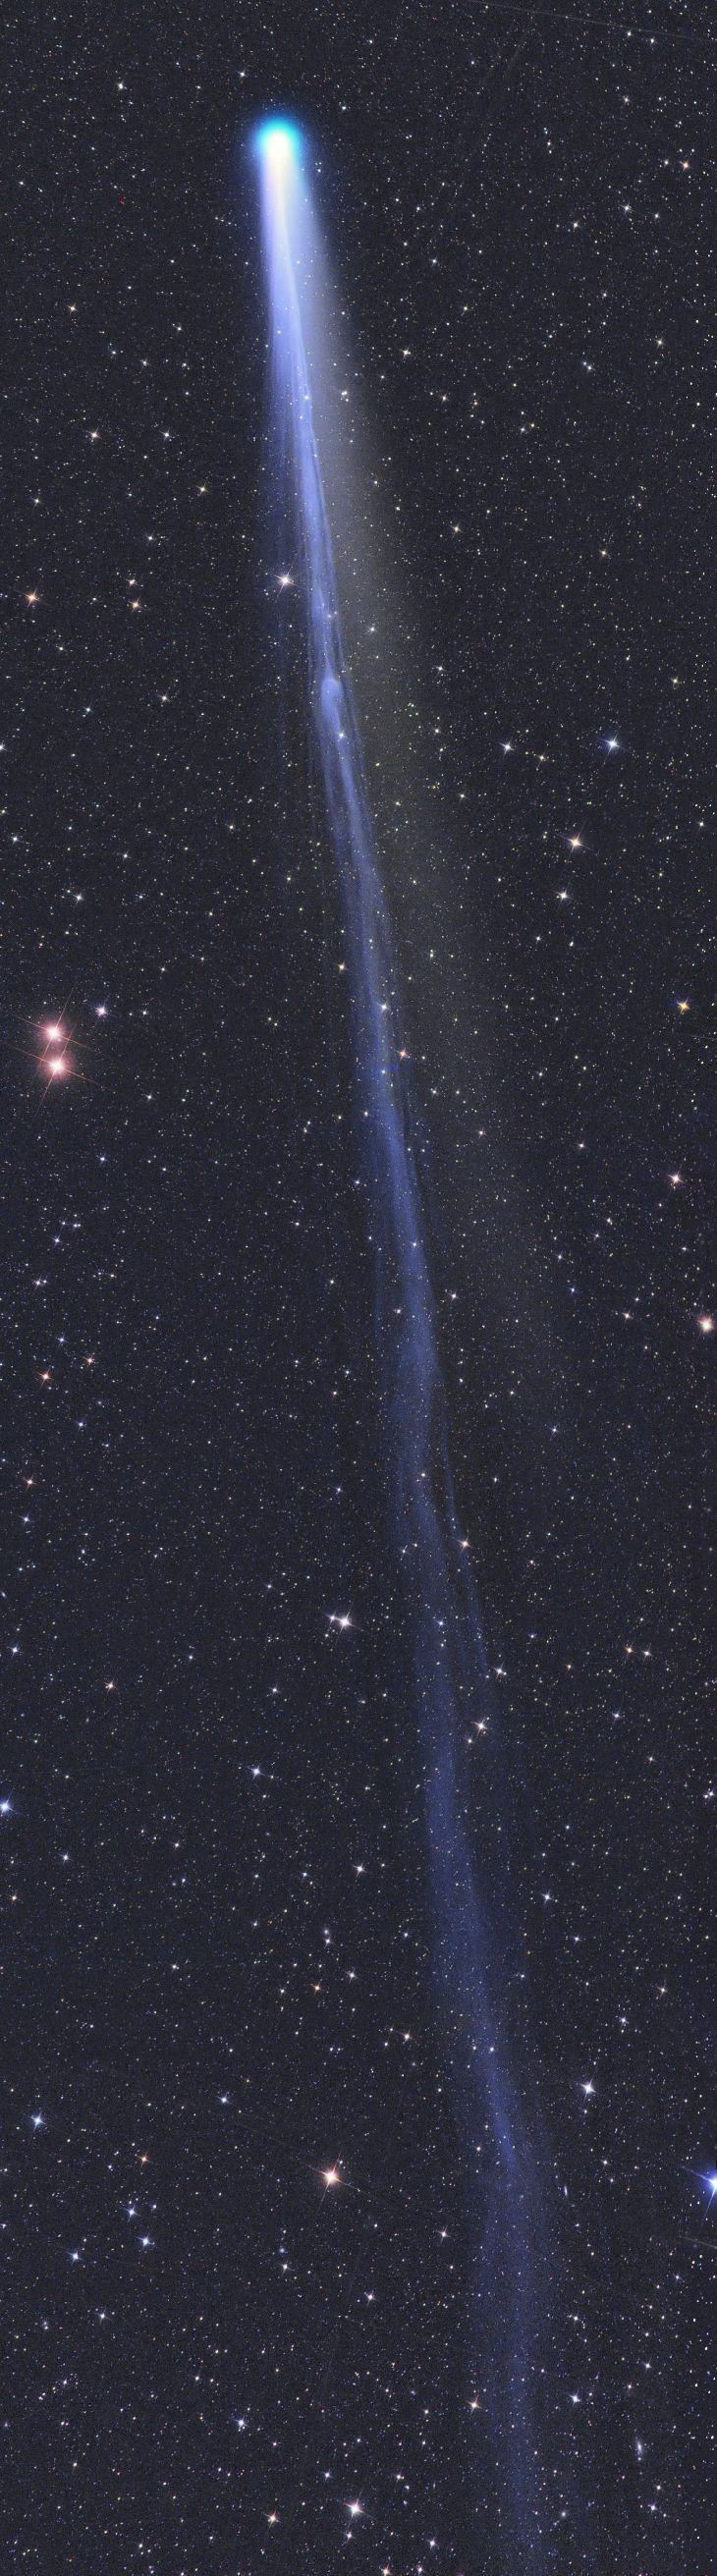 Comet C/2013 R1 Lovejoy. Taken by Gerald Rhemann on December 13, 2013 @ Jauerling, Lower Austria